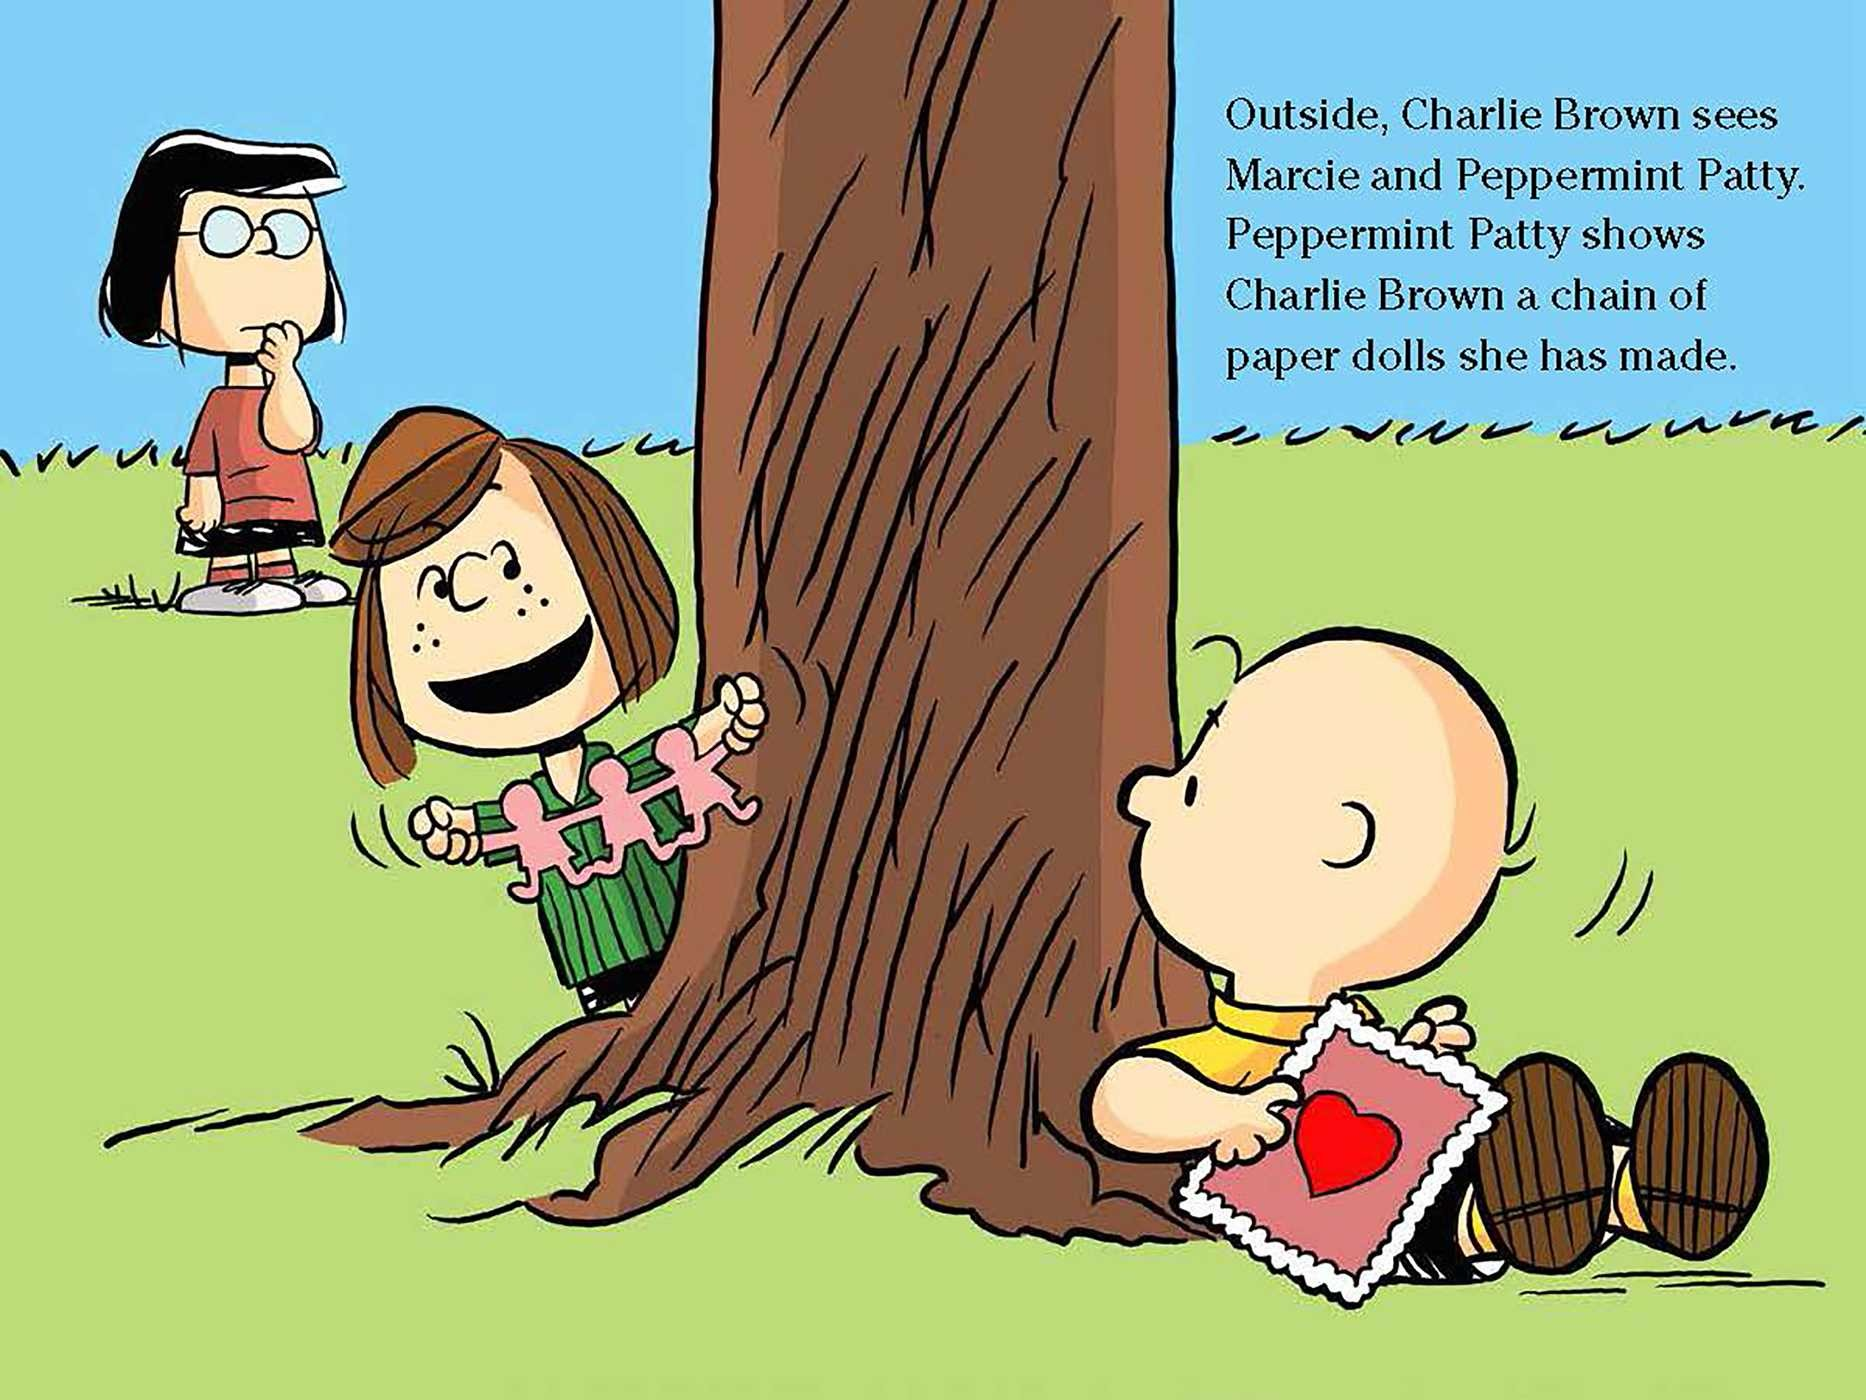 Happy valentines day charlie brown 9781481441339.in05